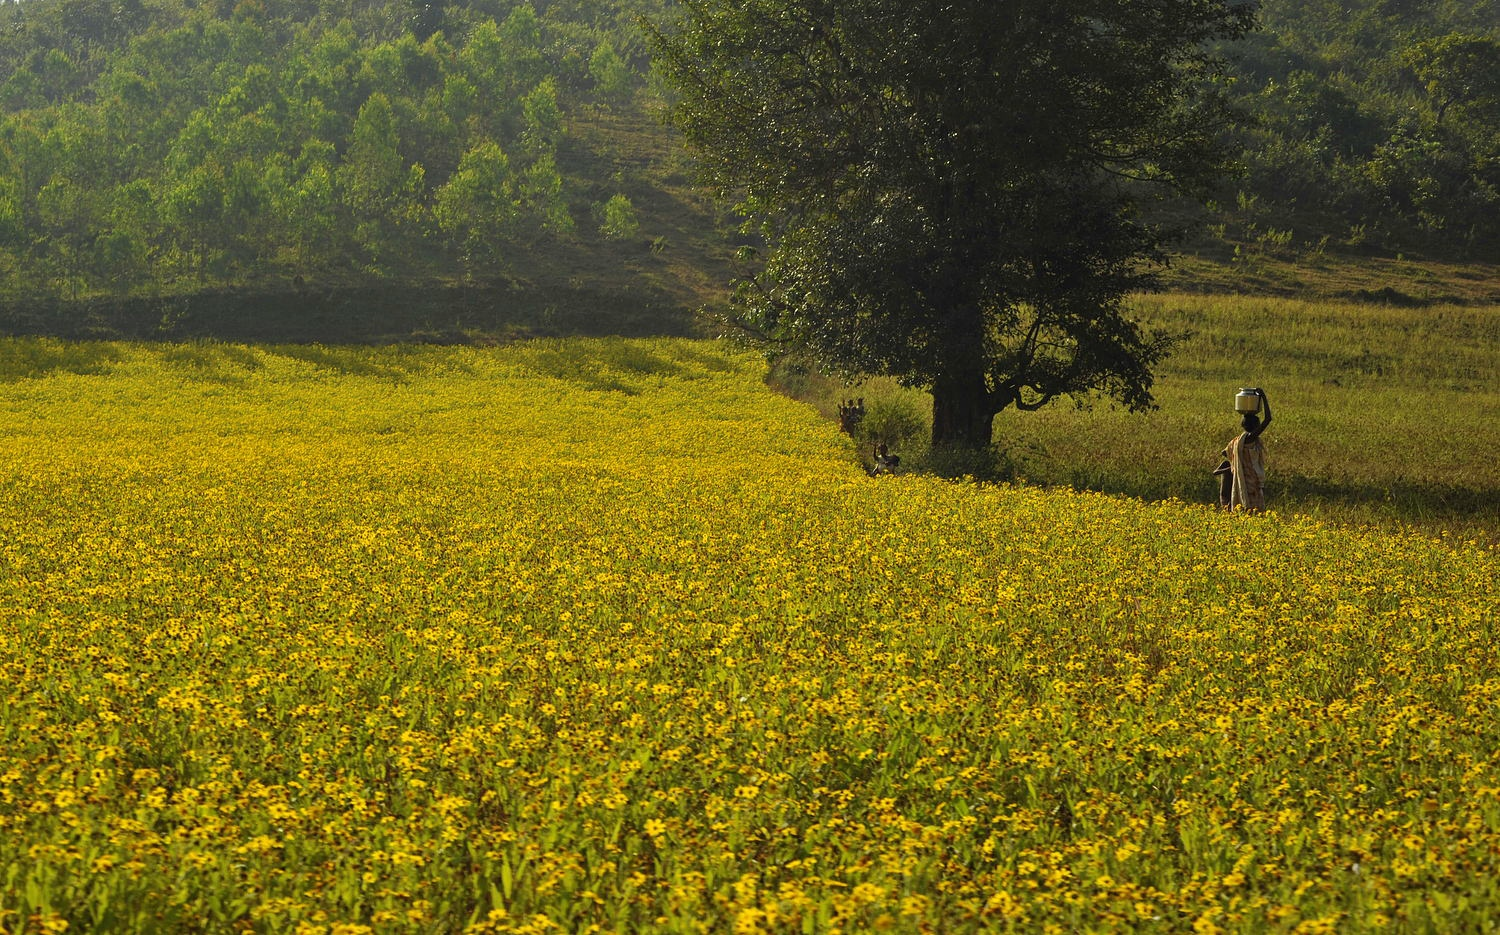 The Field in Orissa